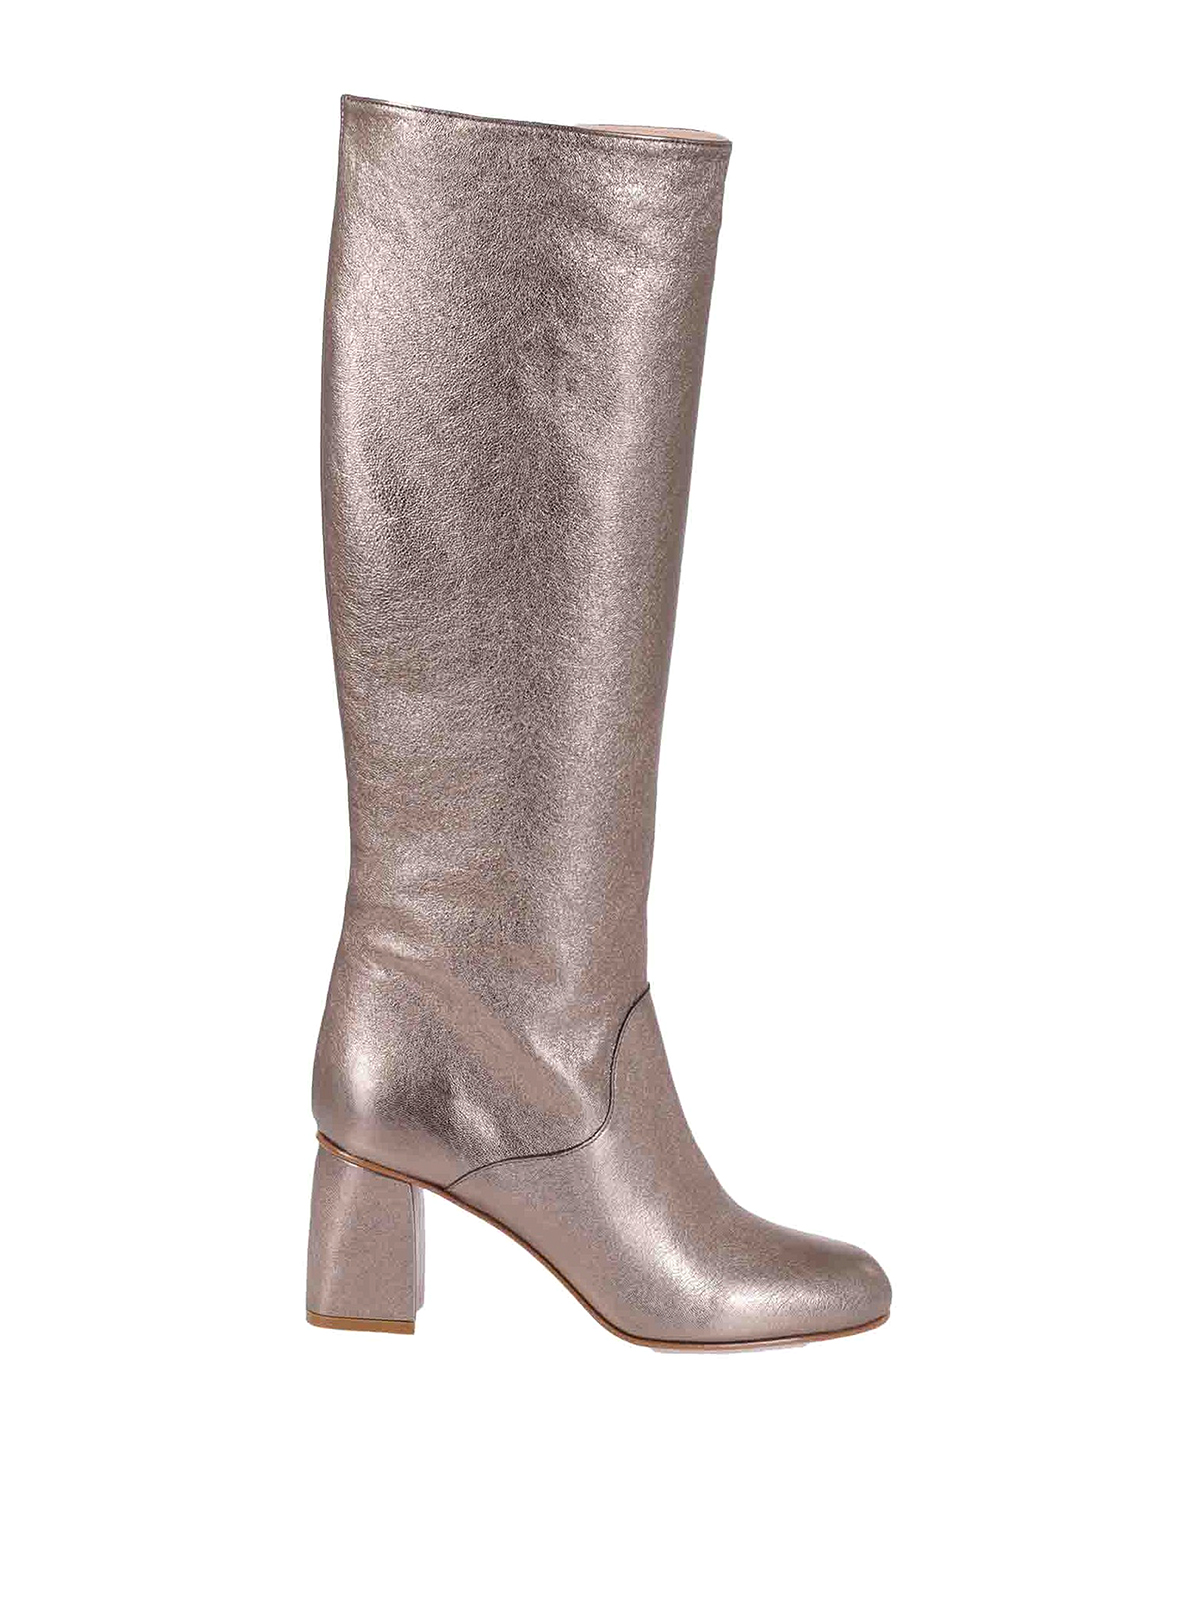 Red Valentino LAMINATED LEATHER BOOTS